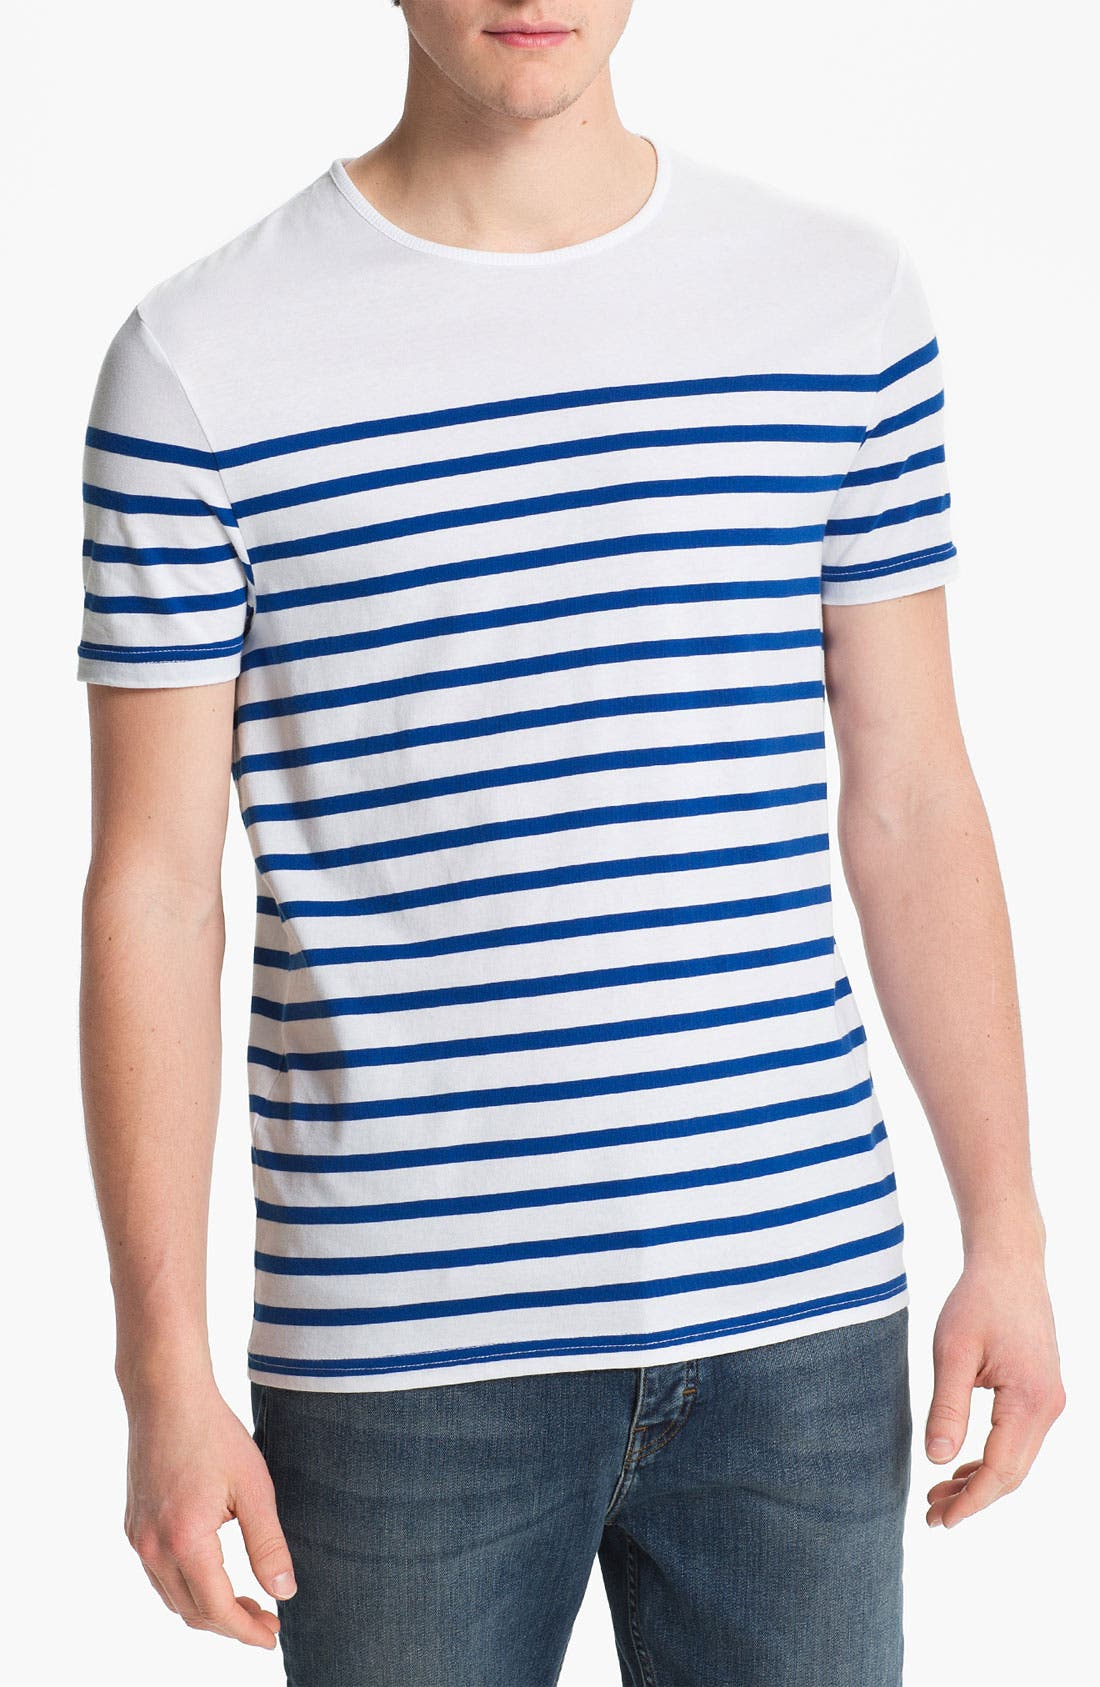 Alternate Image 1 Selected - Topman 'Surf the Web' Stripe T-Shirt